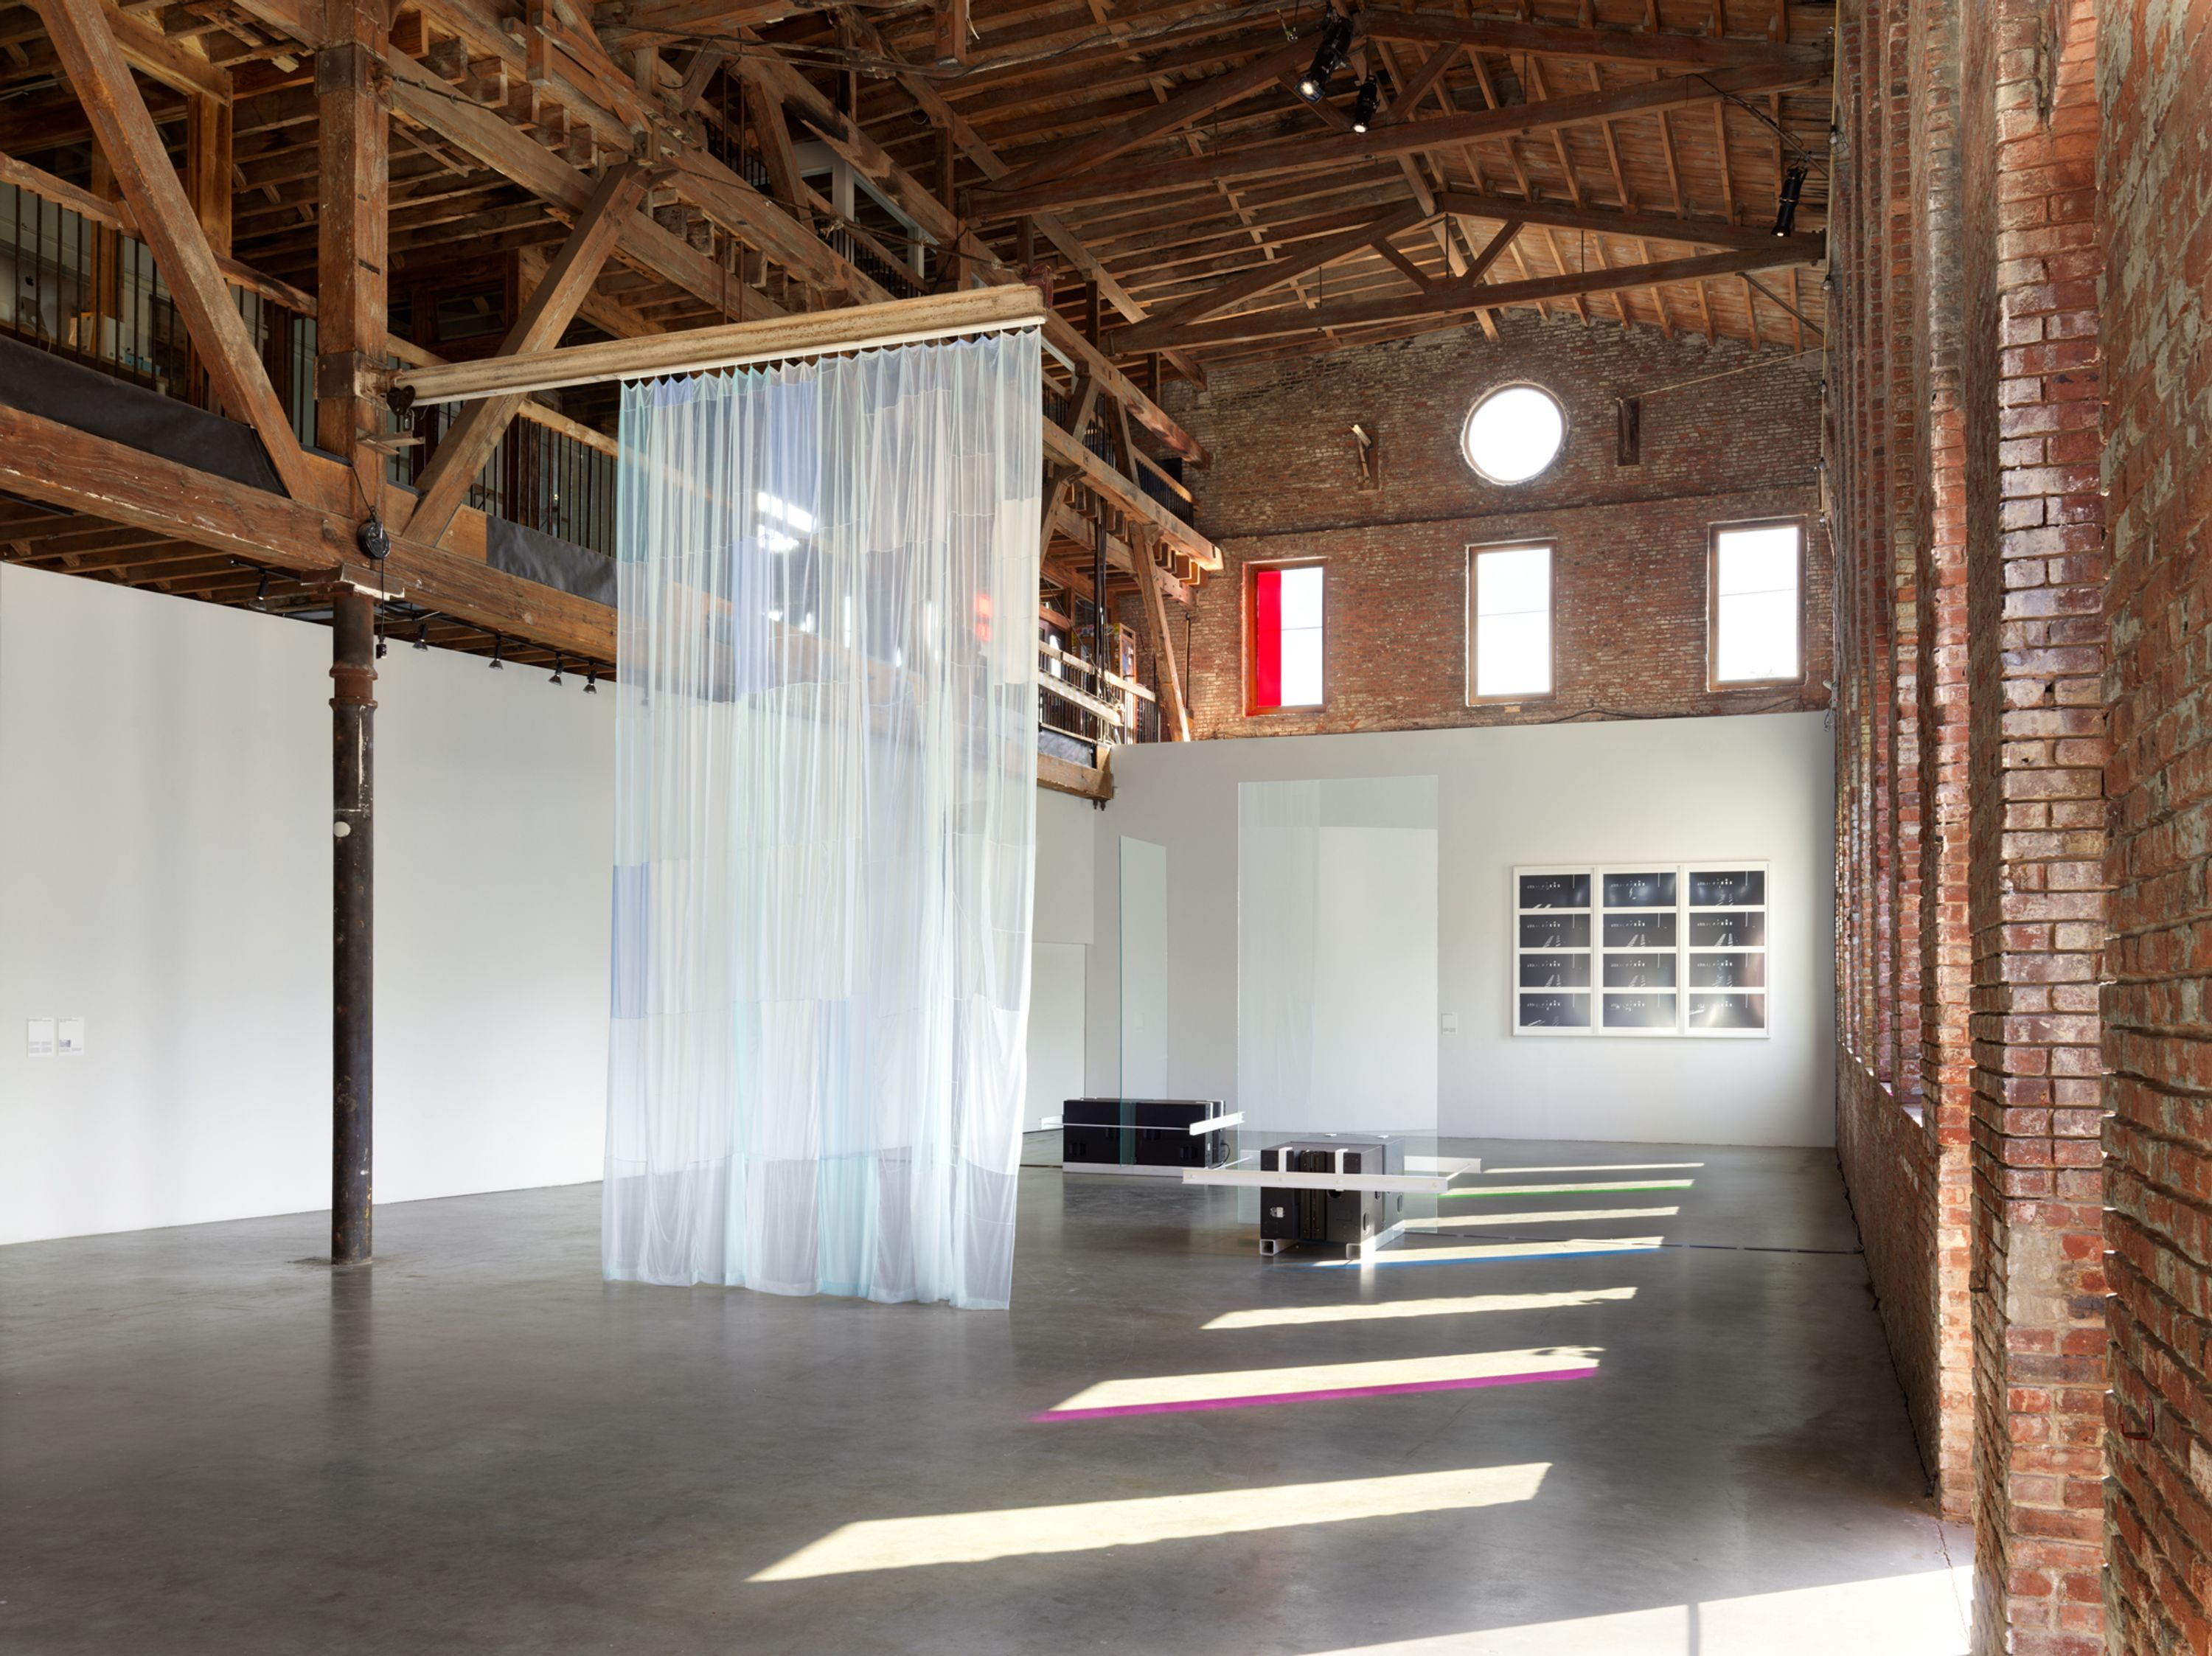 High-ceilinged architectural space inside Pioneer Works where CLOCKWORK is located.